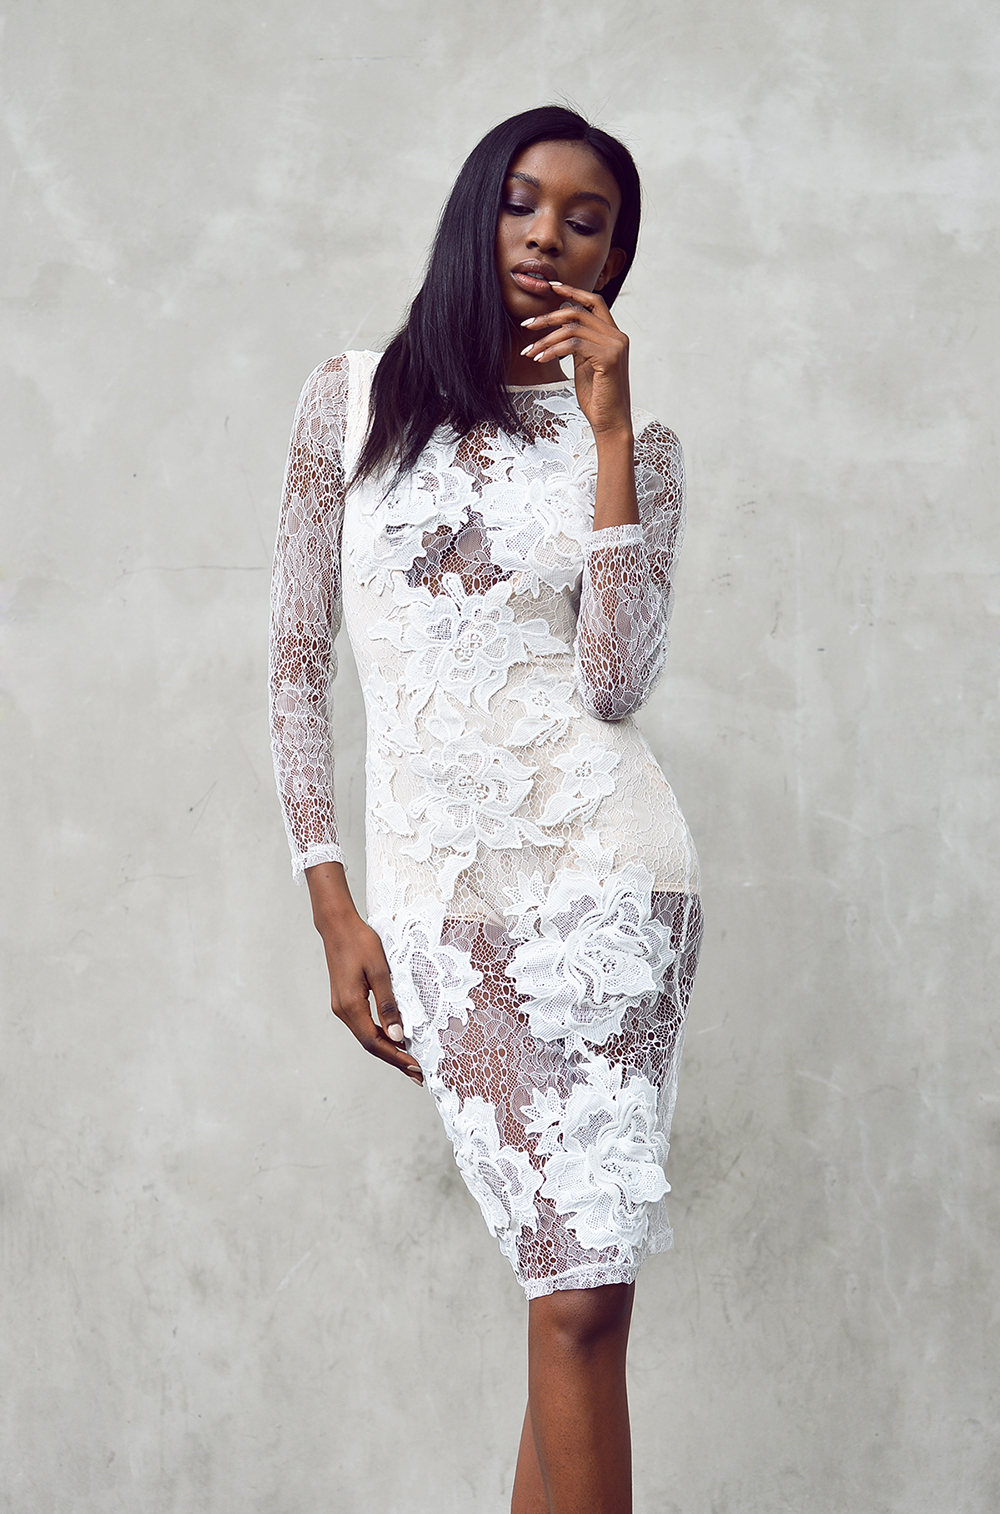 missguided LACE APPLIQUE dress - natasha-ndlovu-3